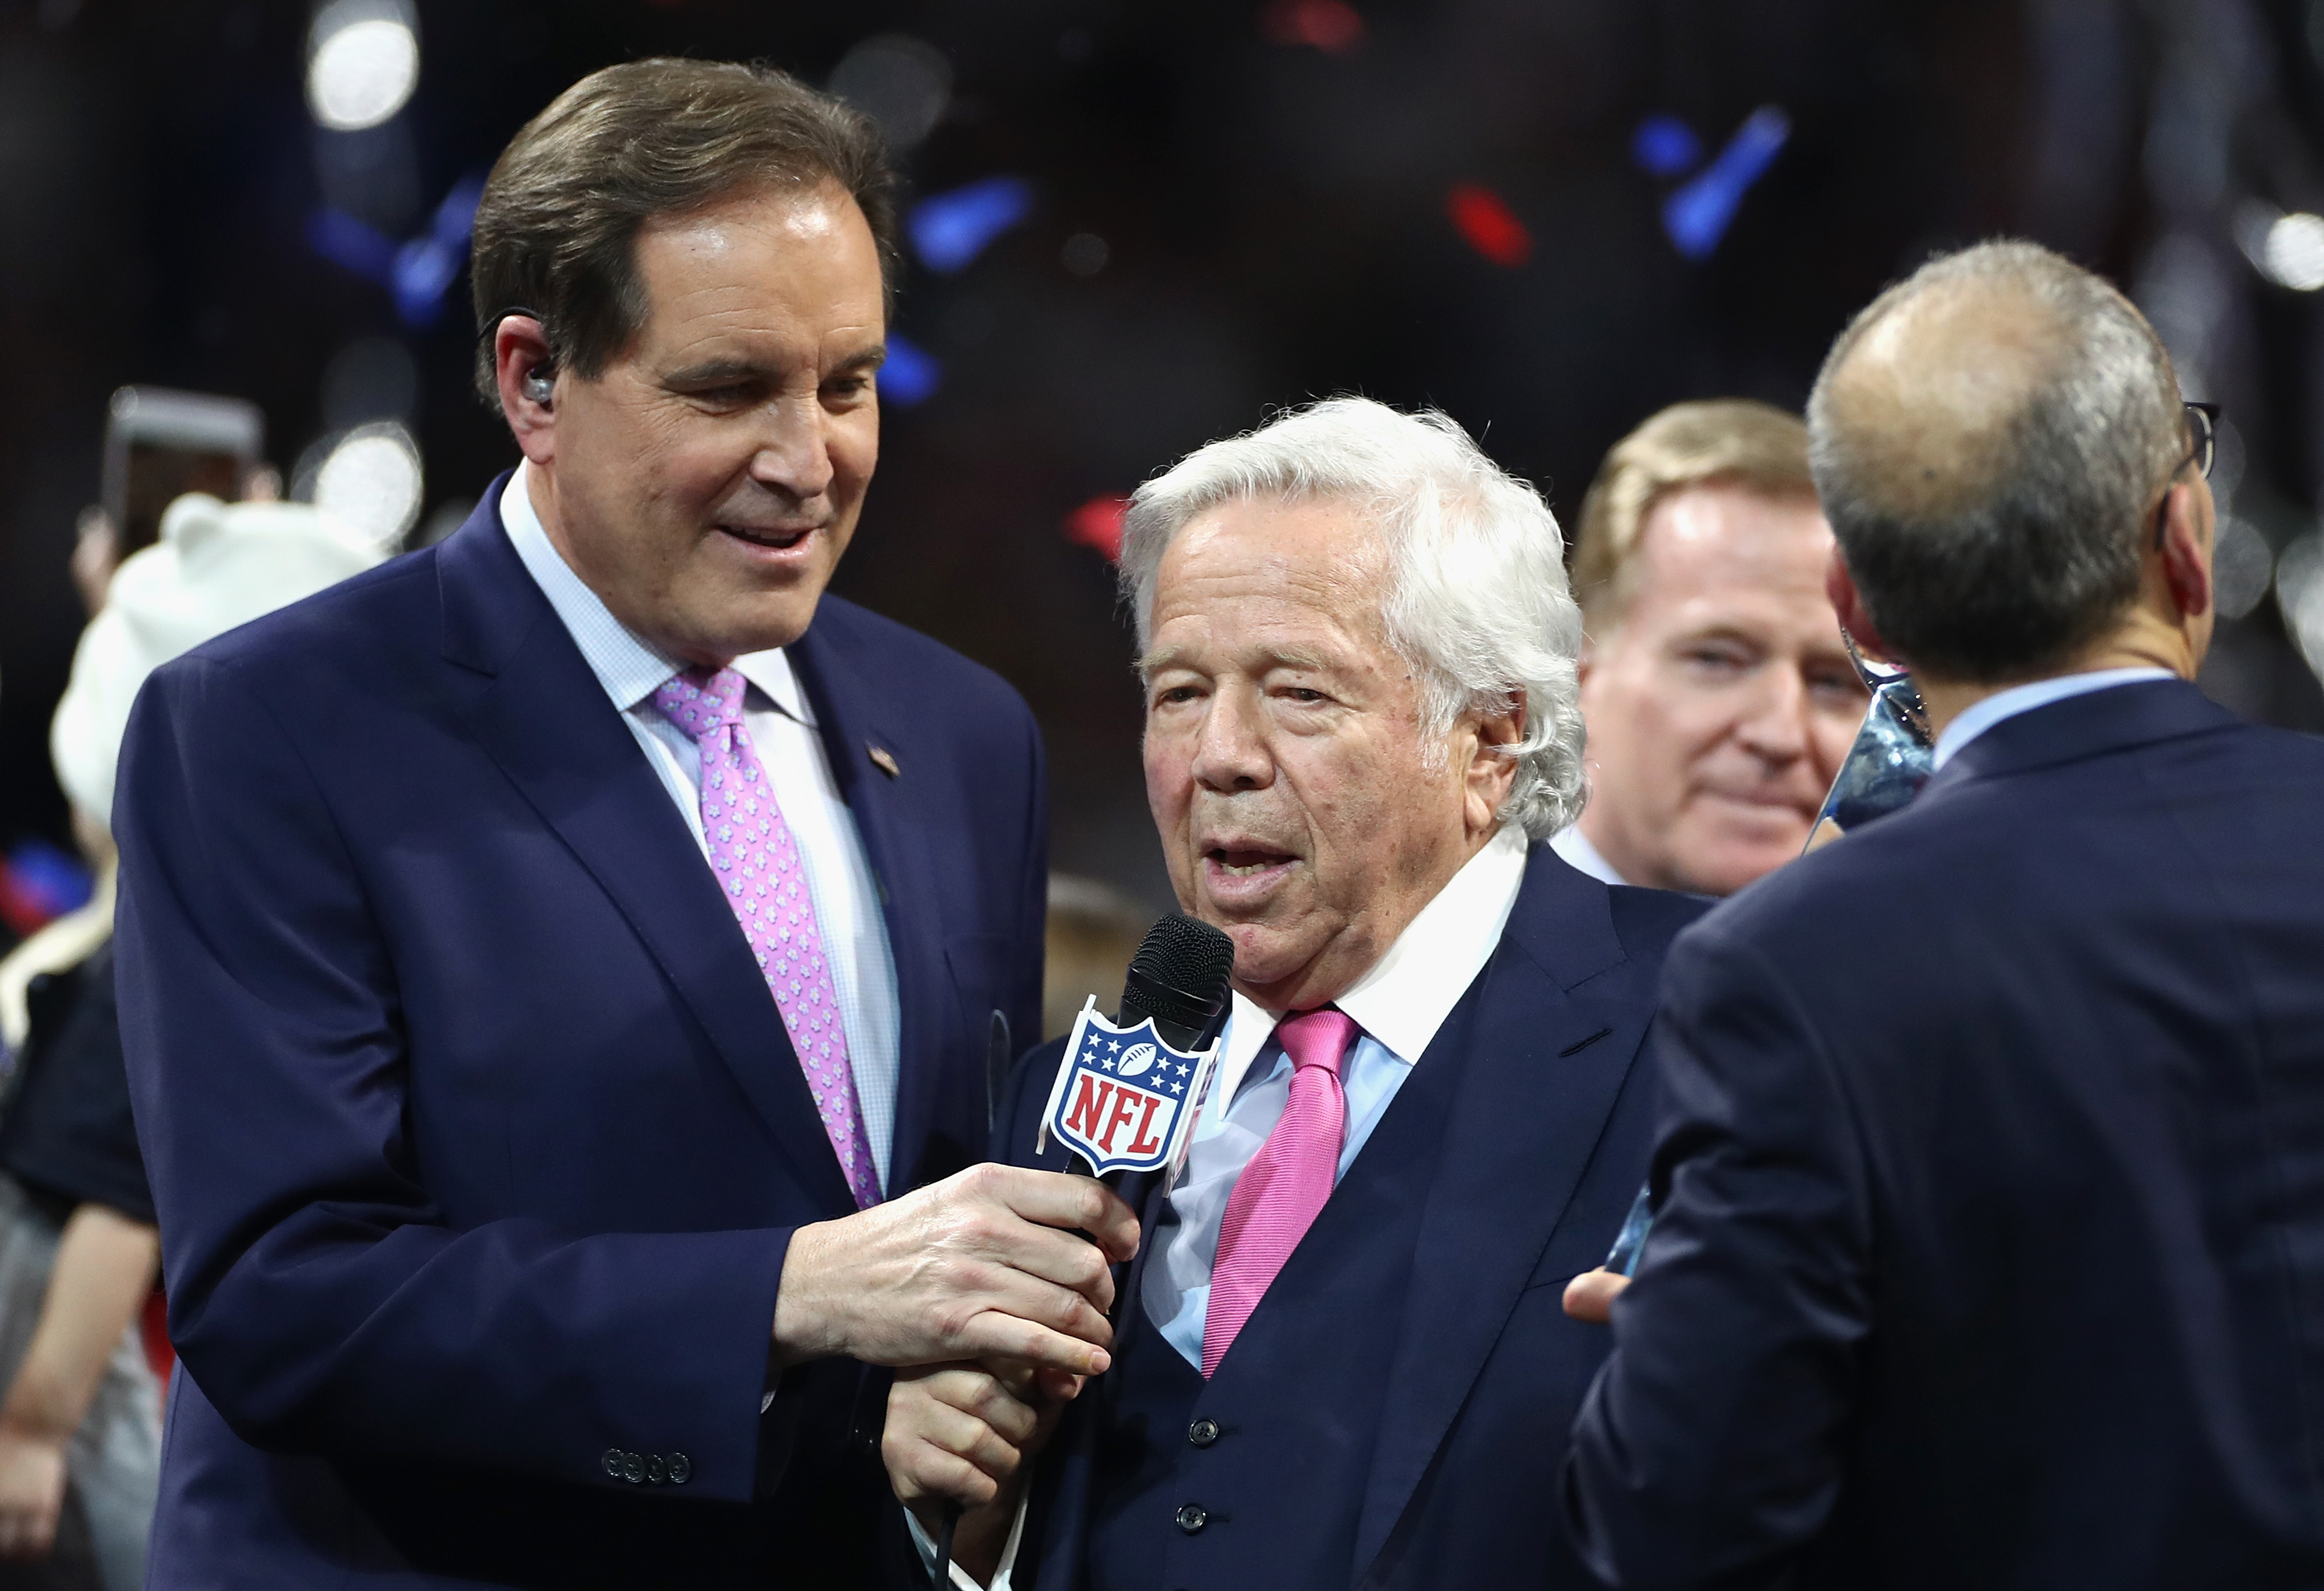 Prosecutors Offer to Drop Prostitution Charges Against Robert Kraft